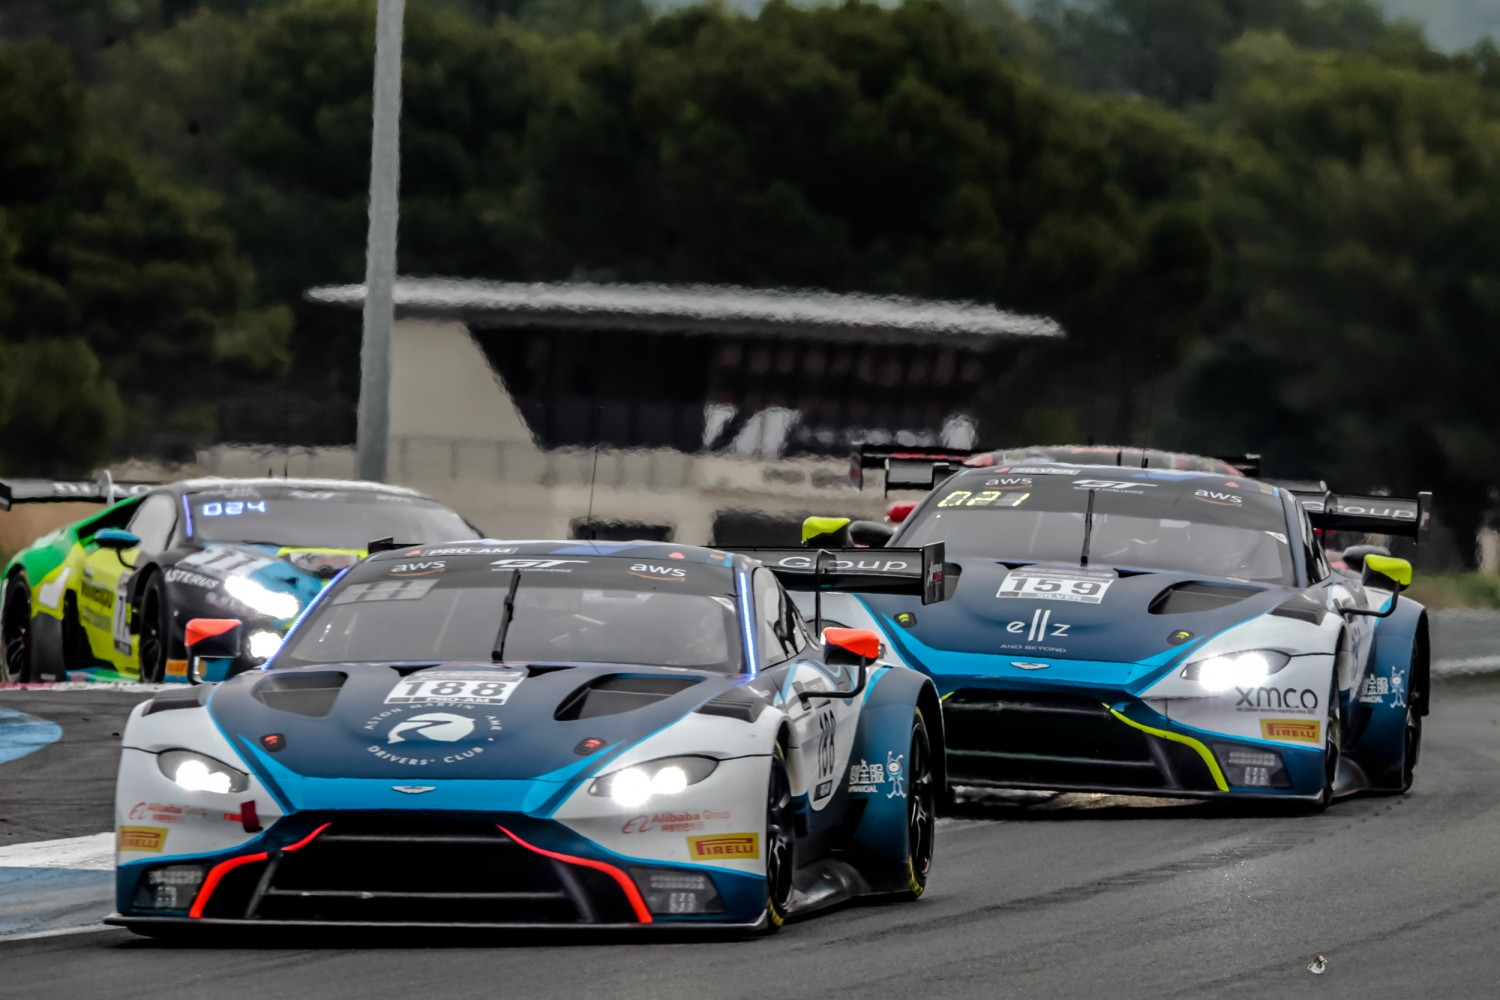 #188 Garage 59 GBR Aston Martin Vantage AMR GT3 Pro-Am Cup Alex West SWE Chris Goodwin GBR Marvin Kirchhofer DEU, Race  | SRO / Patrick Hecq Photography